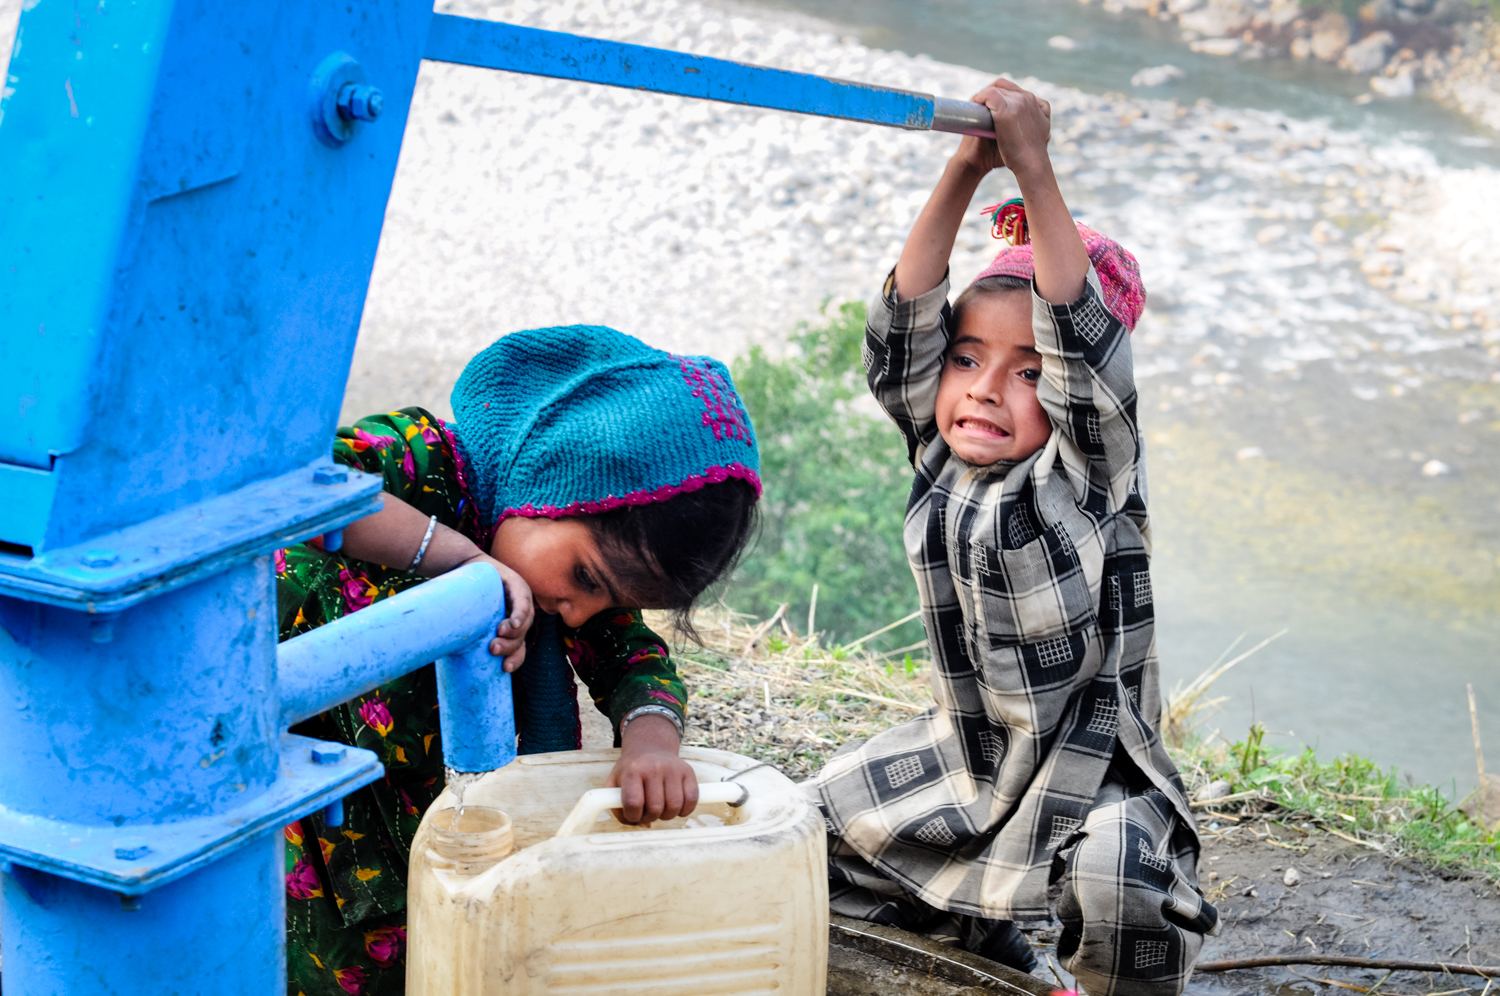 Children are expected to help with chores, to the extent of their ability. Here, Rustem and his sister Djennam Khatoon, fetch water from a roadside pump during the migration.